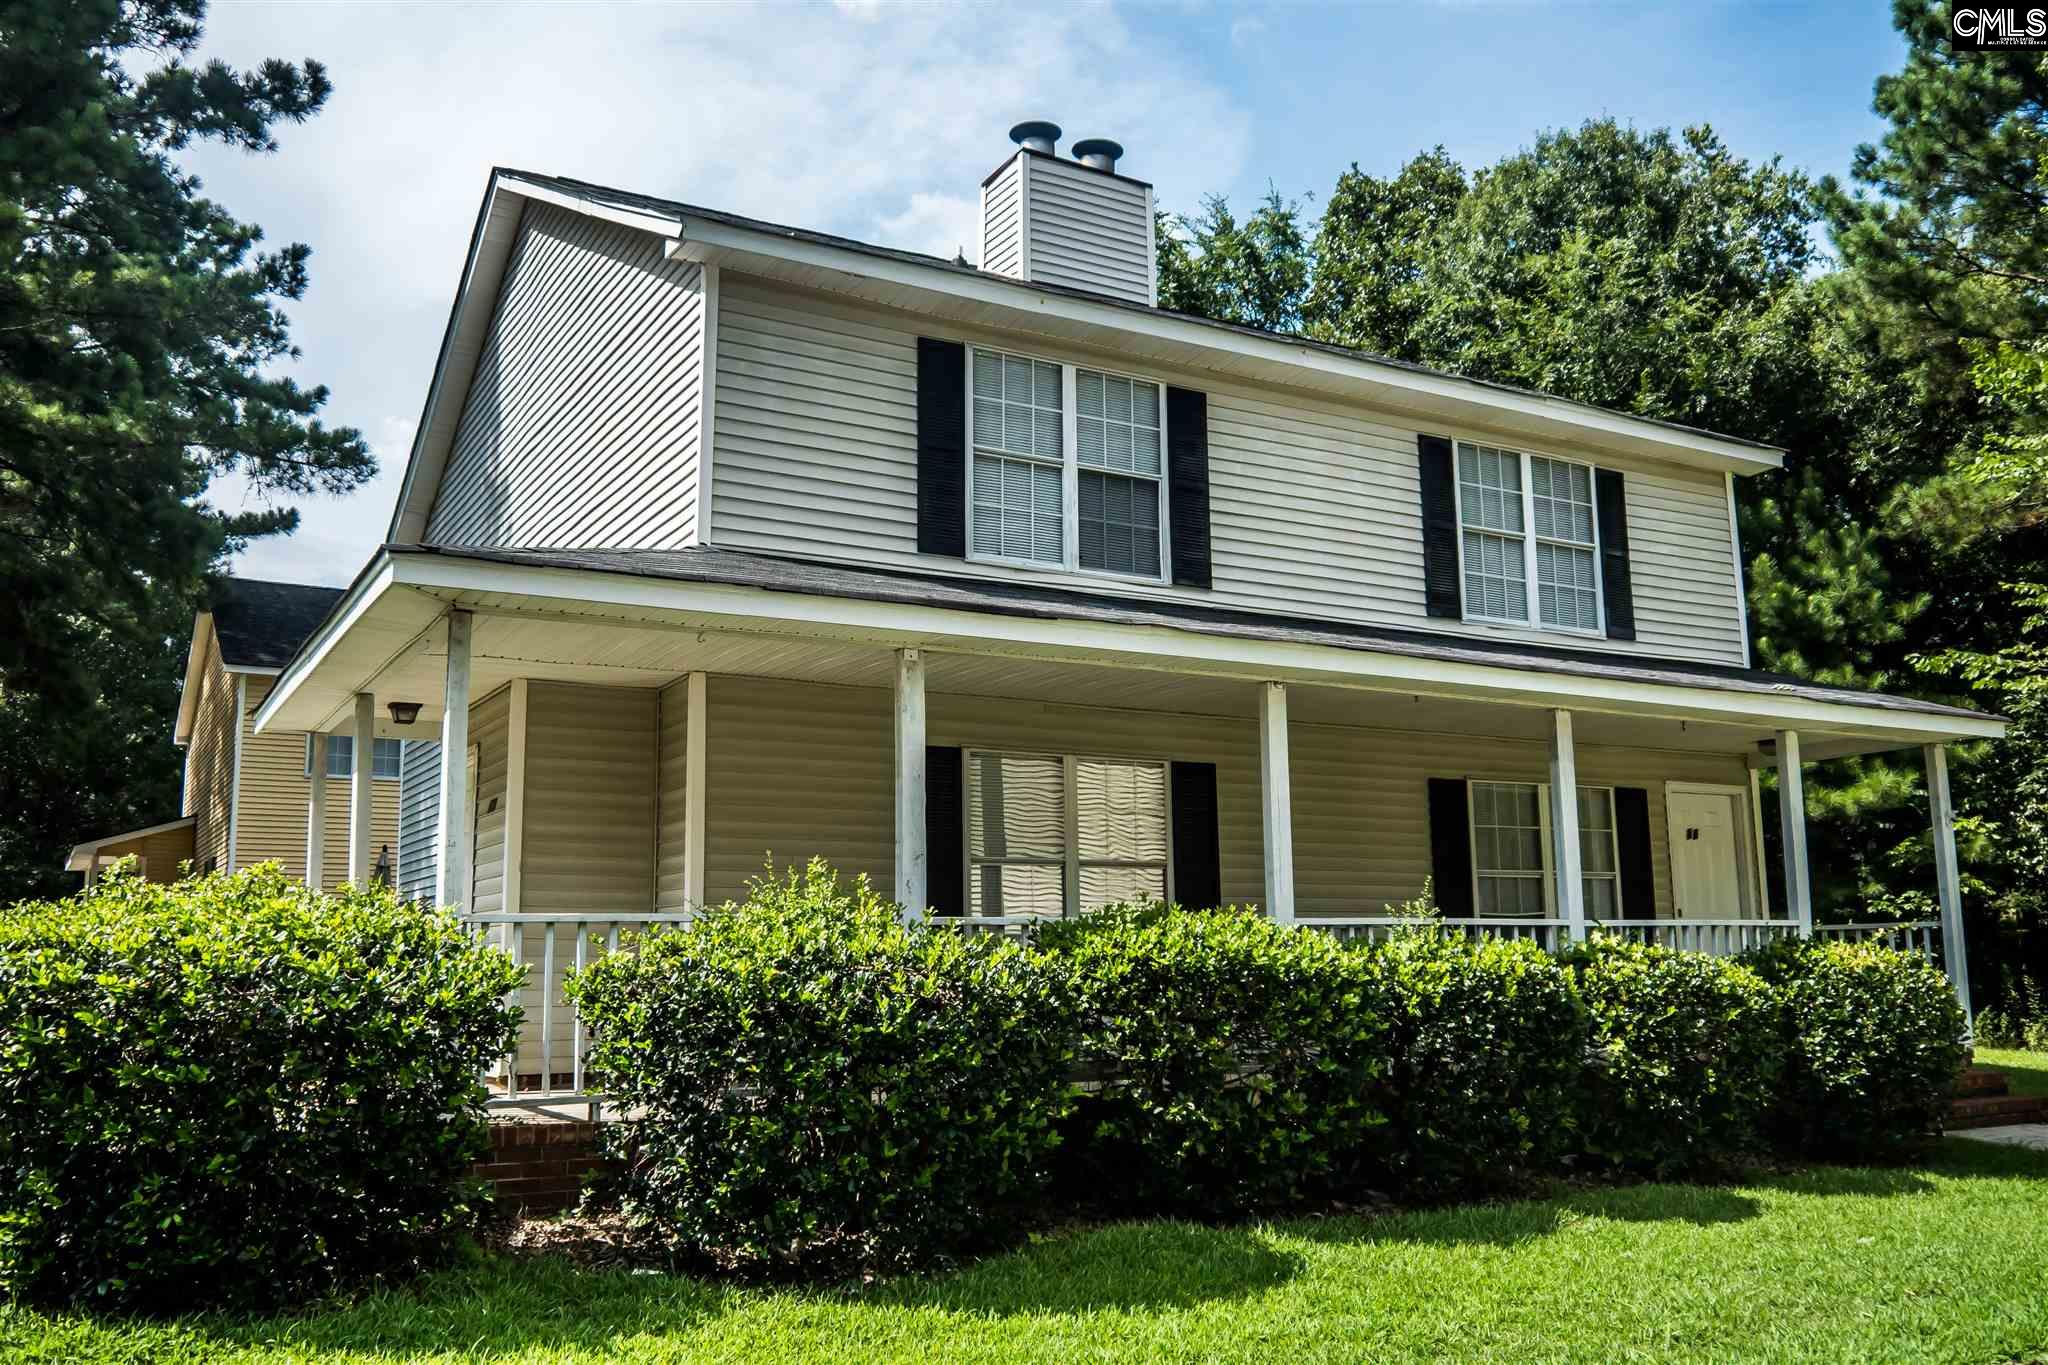 133-135 Country Town Columbia, SC 29212